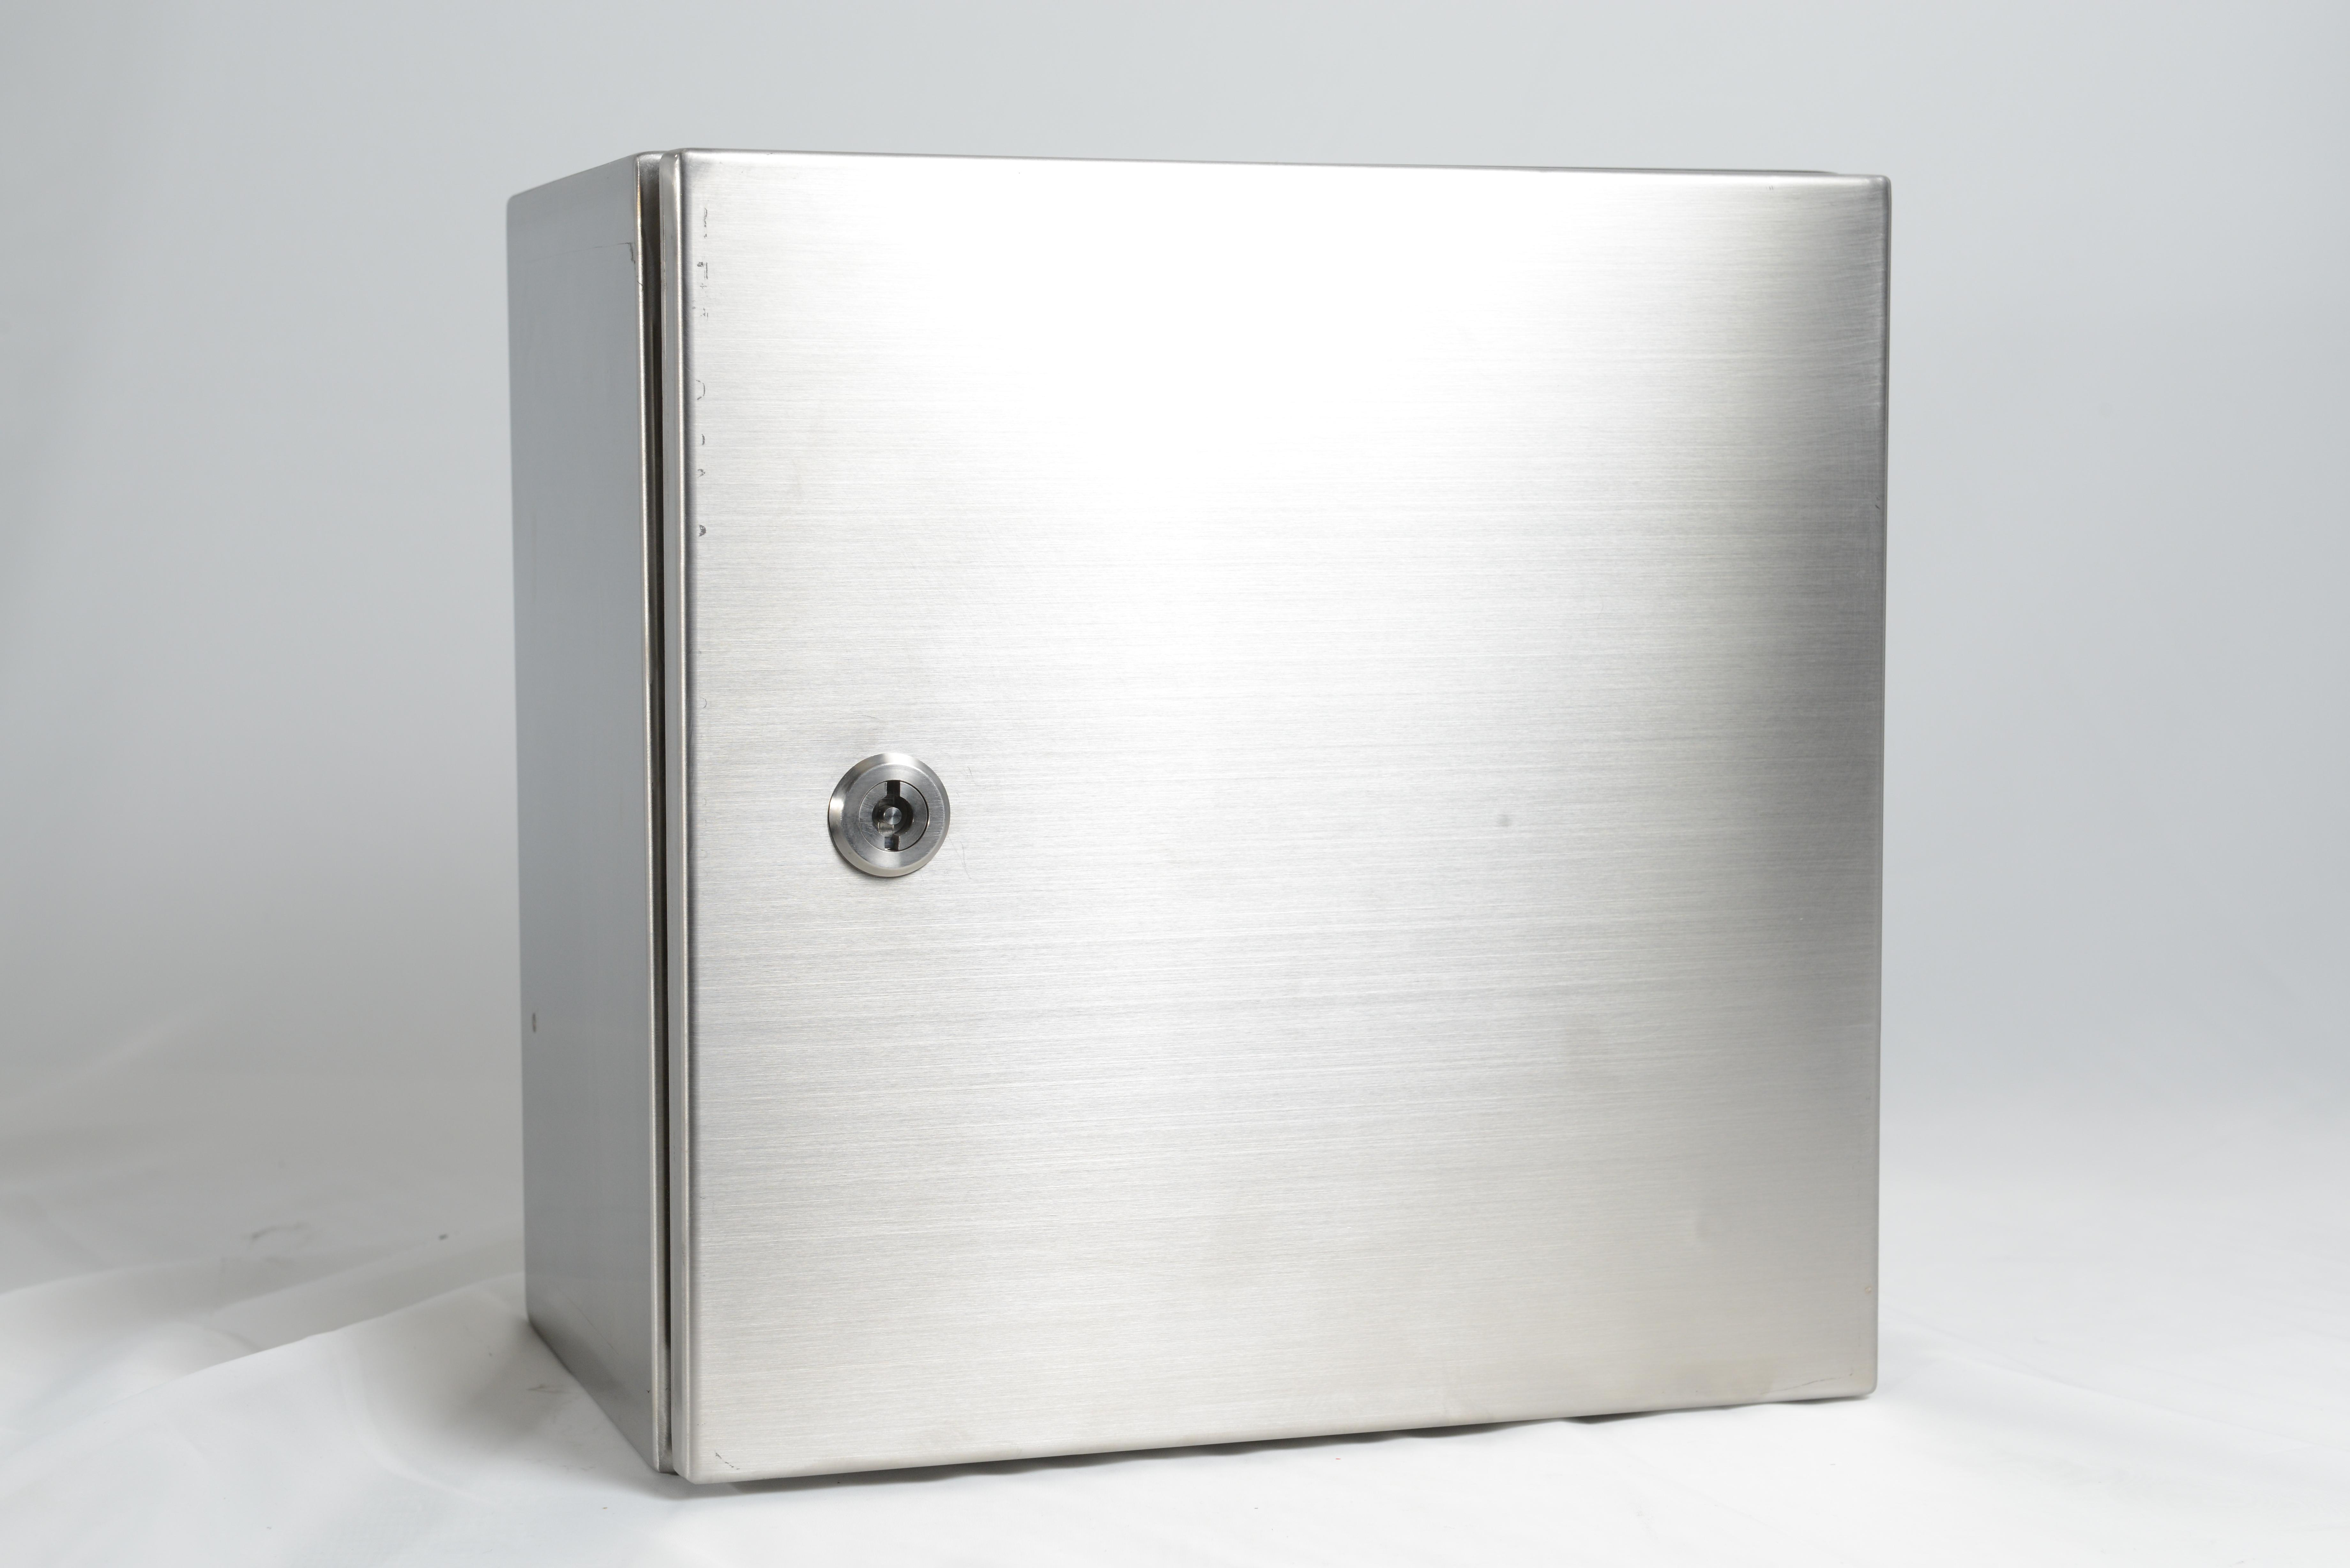 RCG stainless steel Enclosure 316 grade 800x800x300mm - Wall mounting